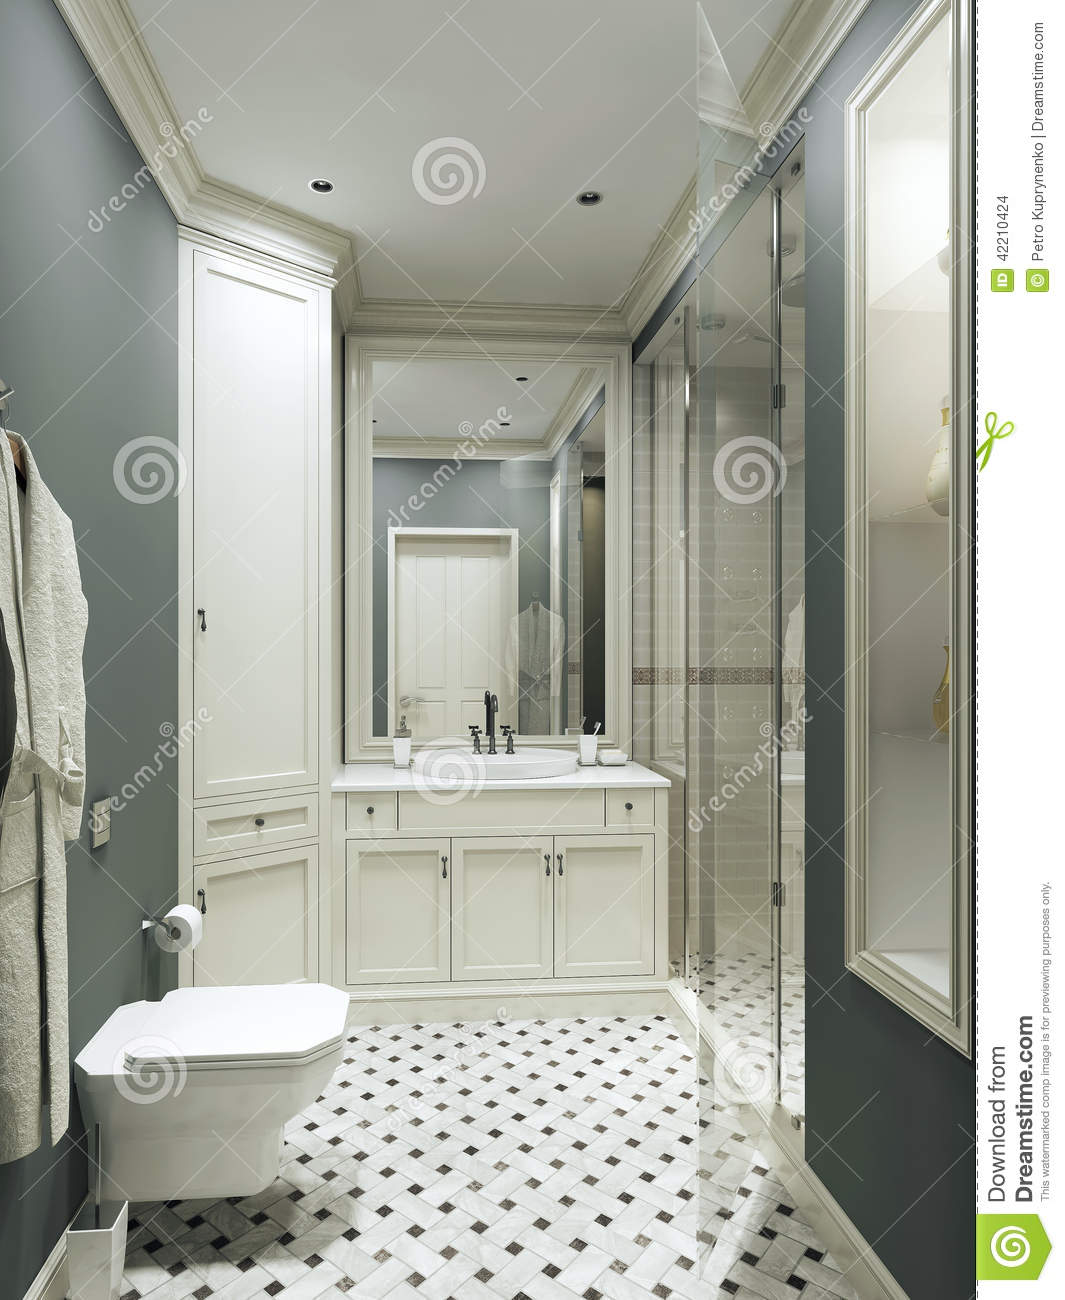 Foto Bagni Stile Country bathroom country style stock illustration. illustration of